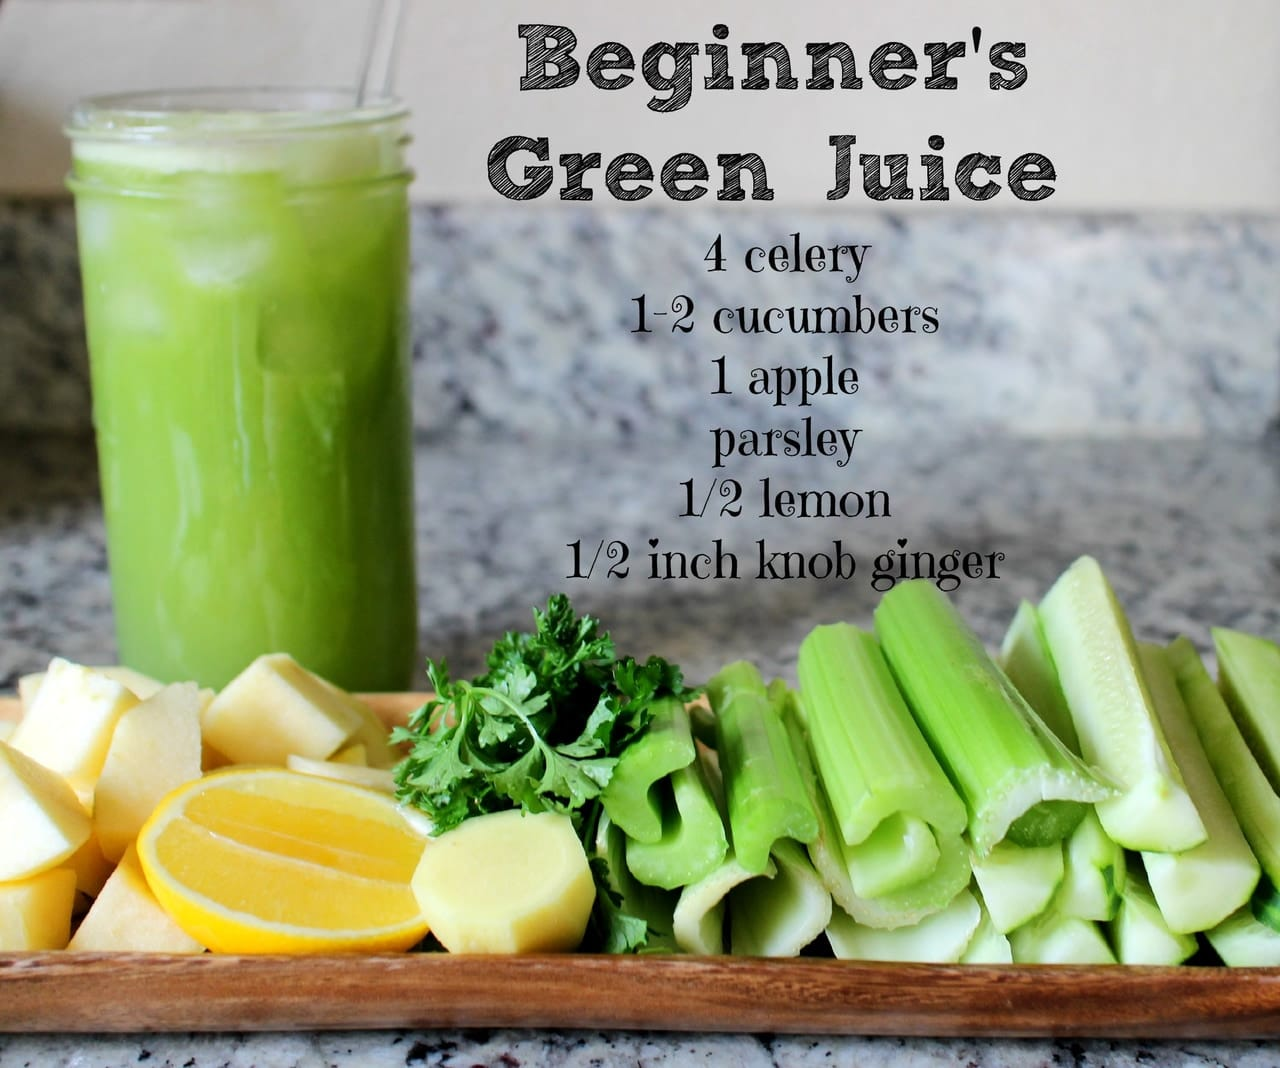 juice cleanse, green juice detox, and green juice benefits image